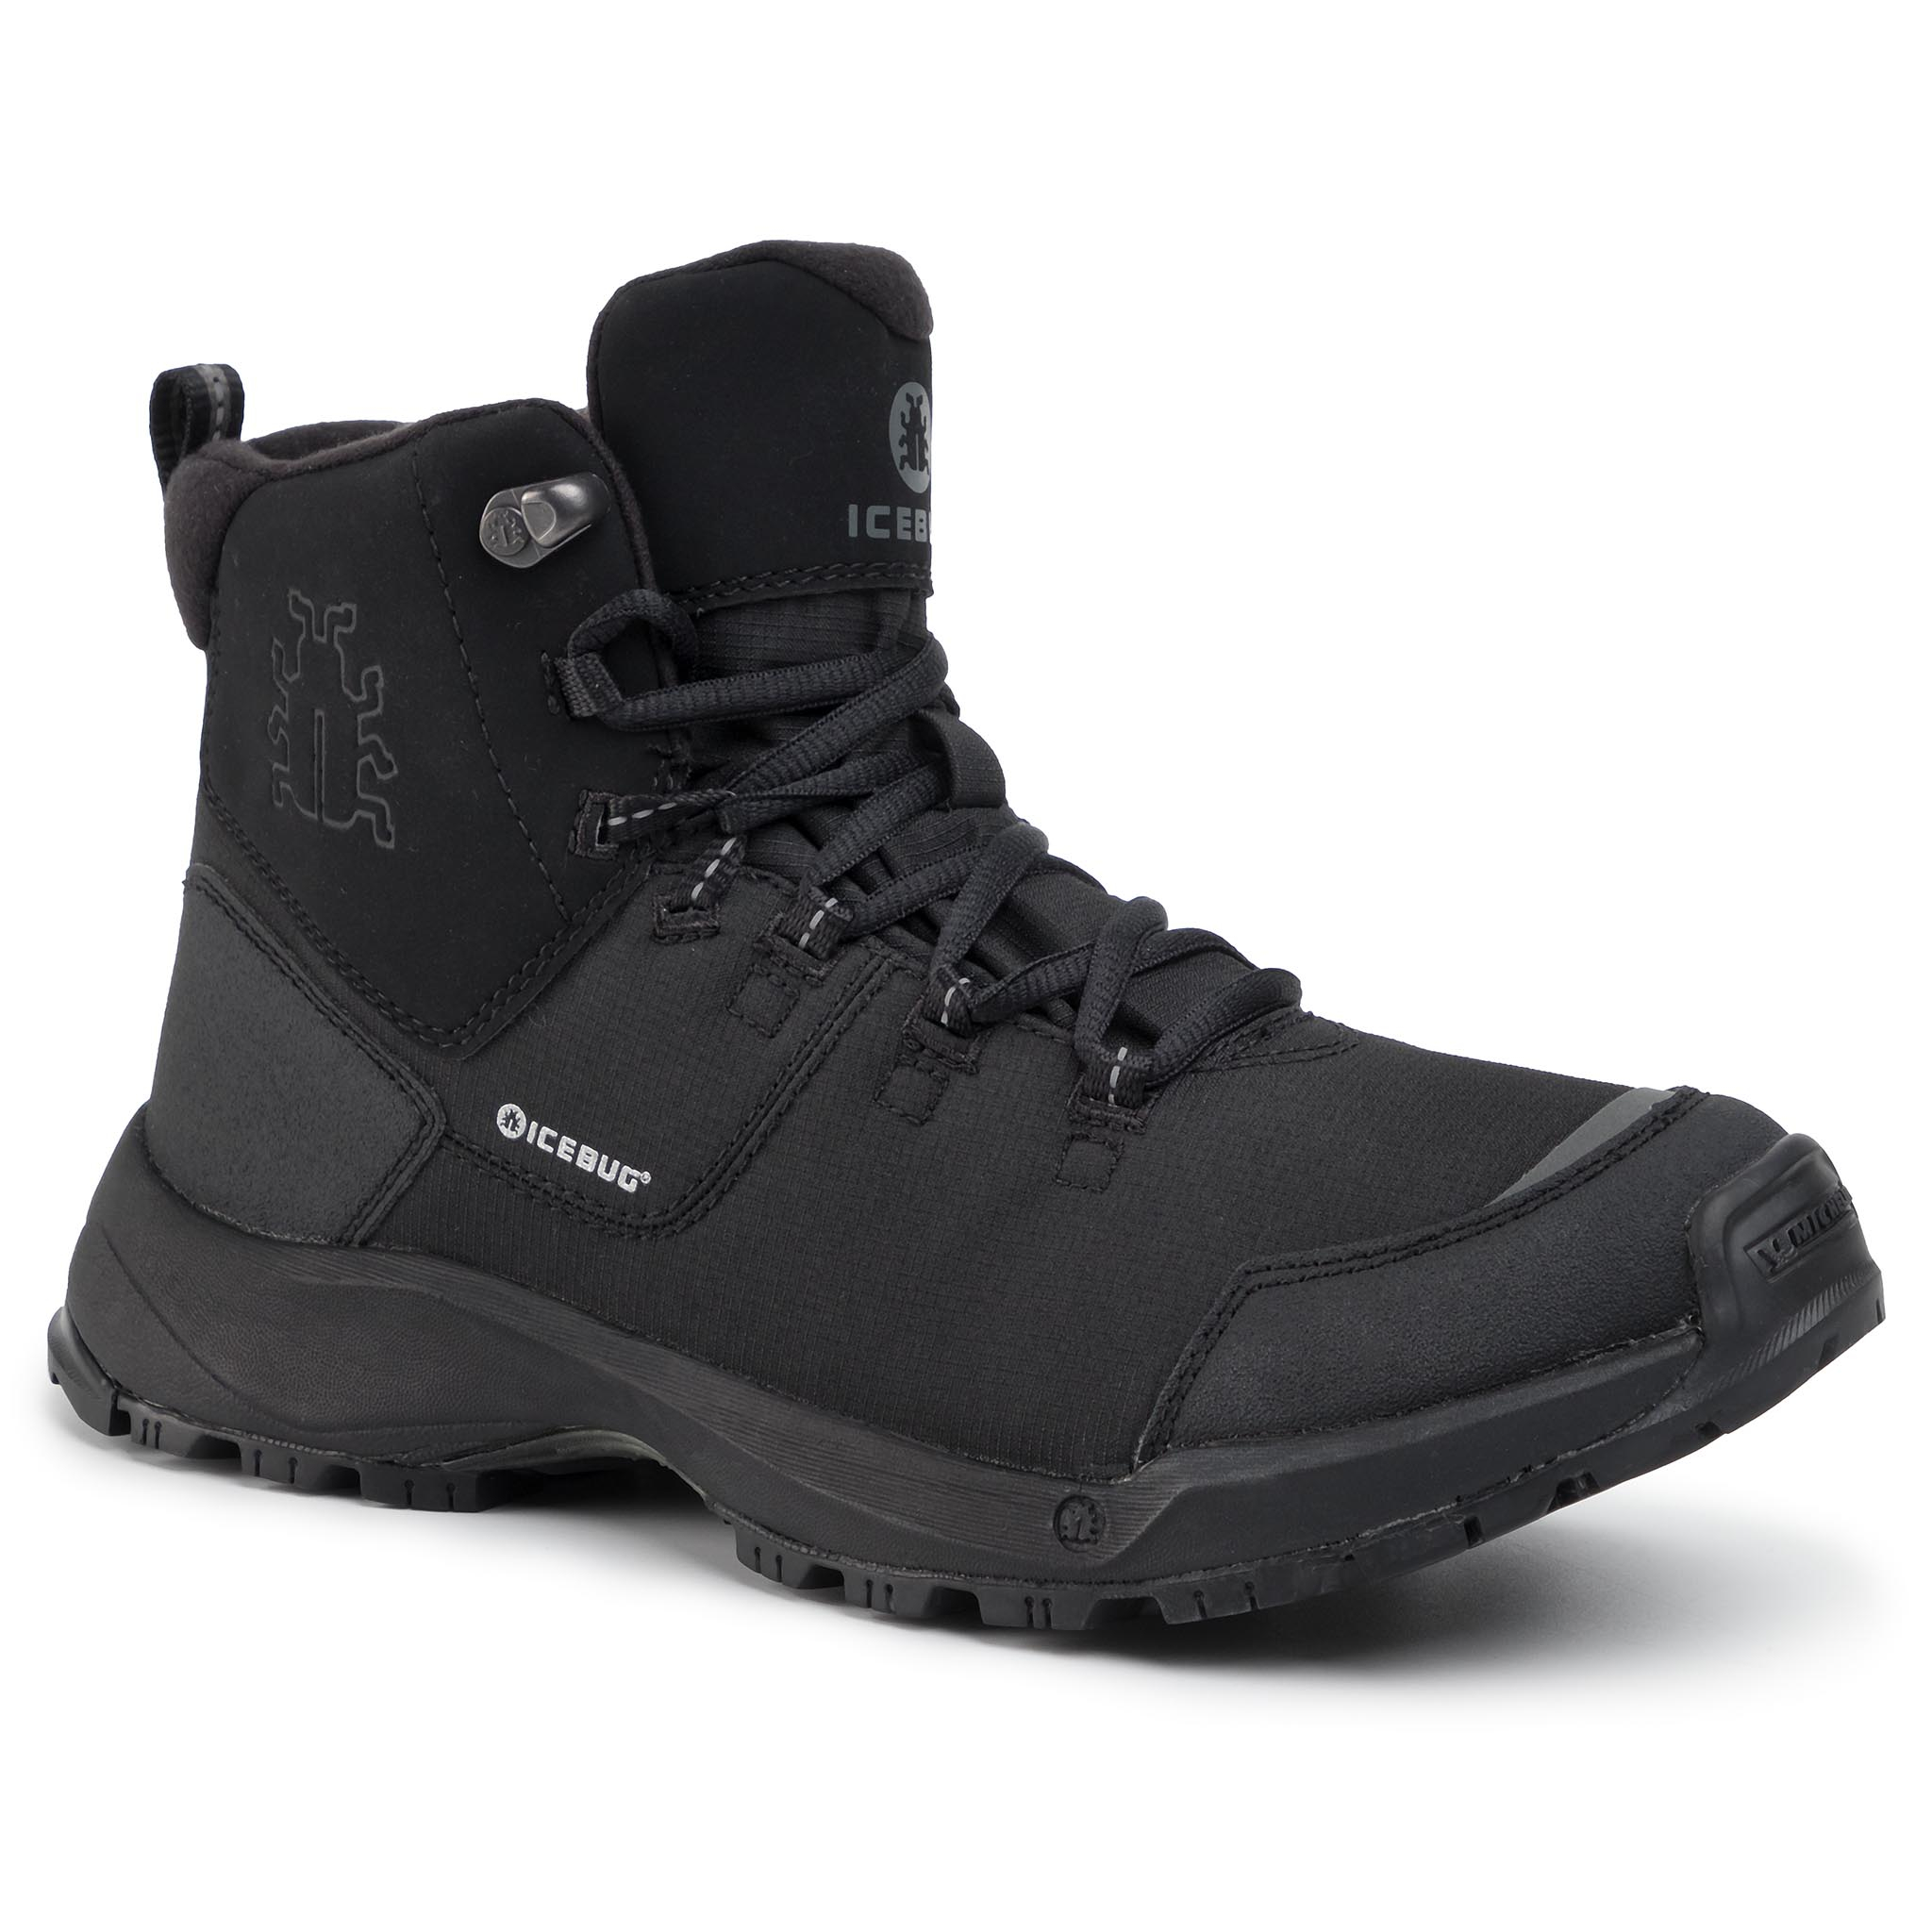 Trekkings Icebug - Nirak M Michelin Wic F13057-0a Black imagine epantofi.ro 2021